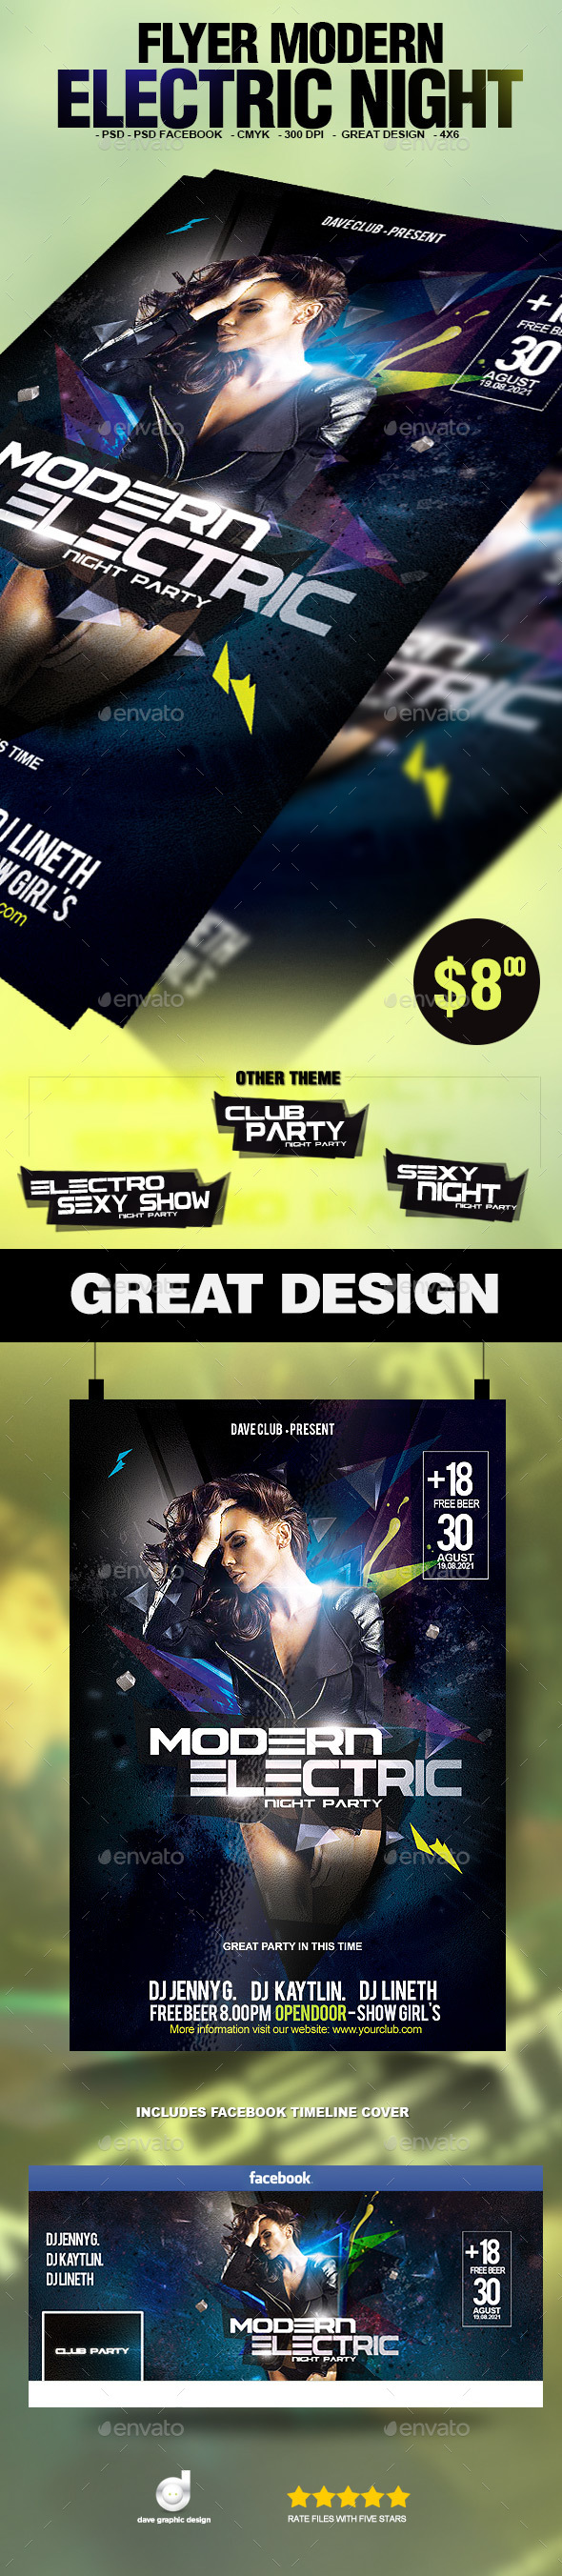 Flyer Modern Electric Night - Clubs & Parties Events